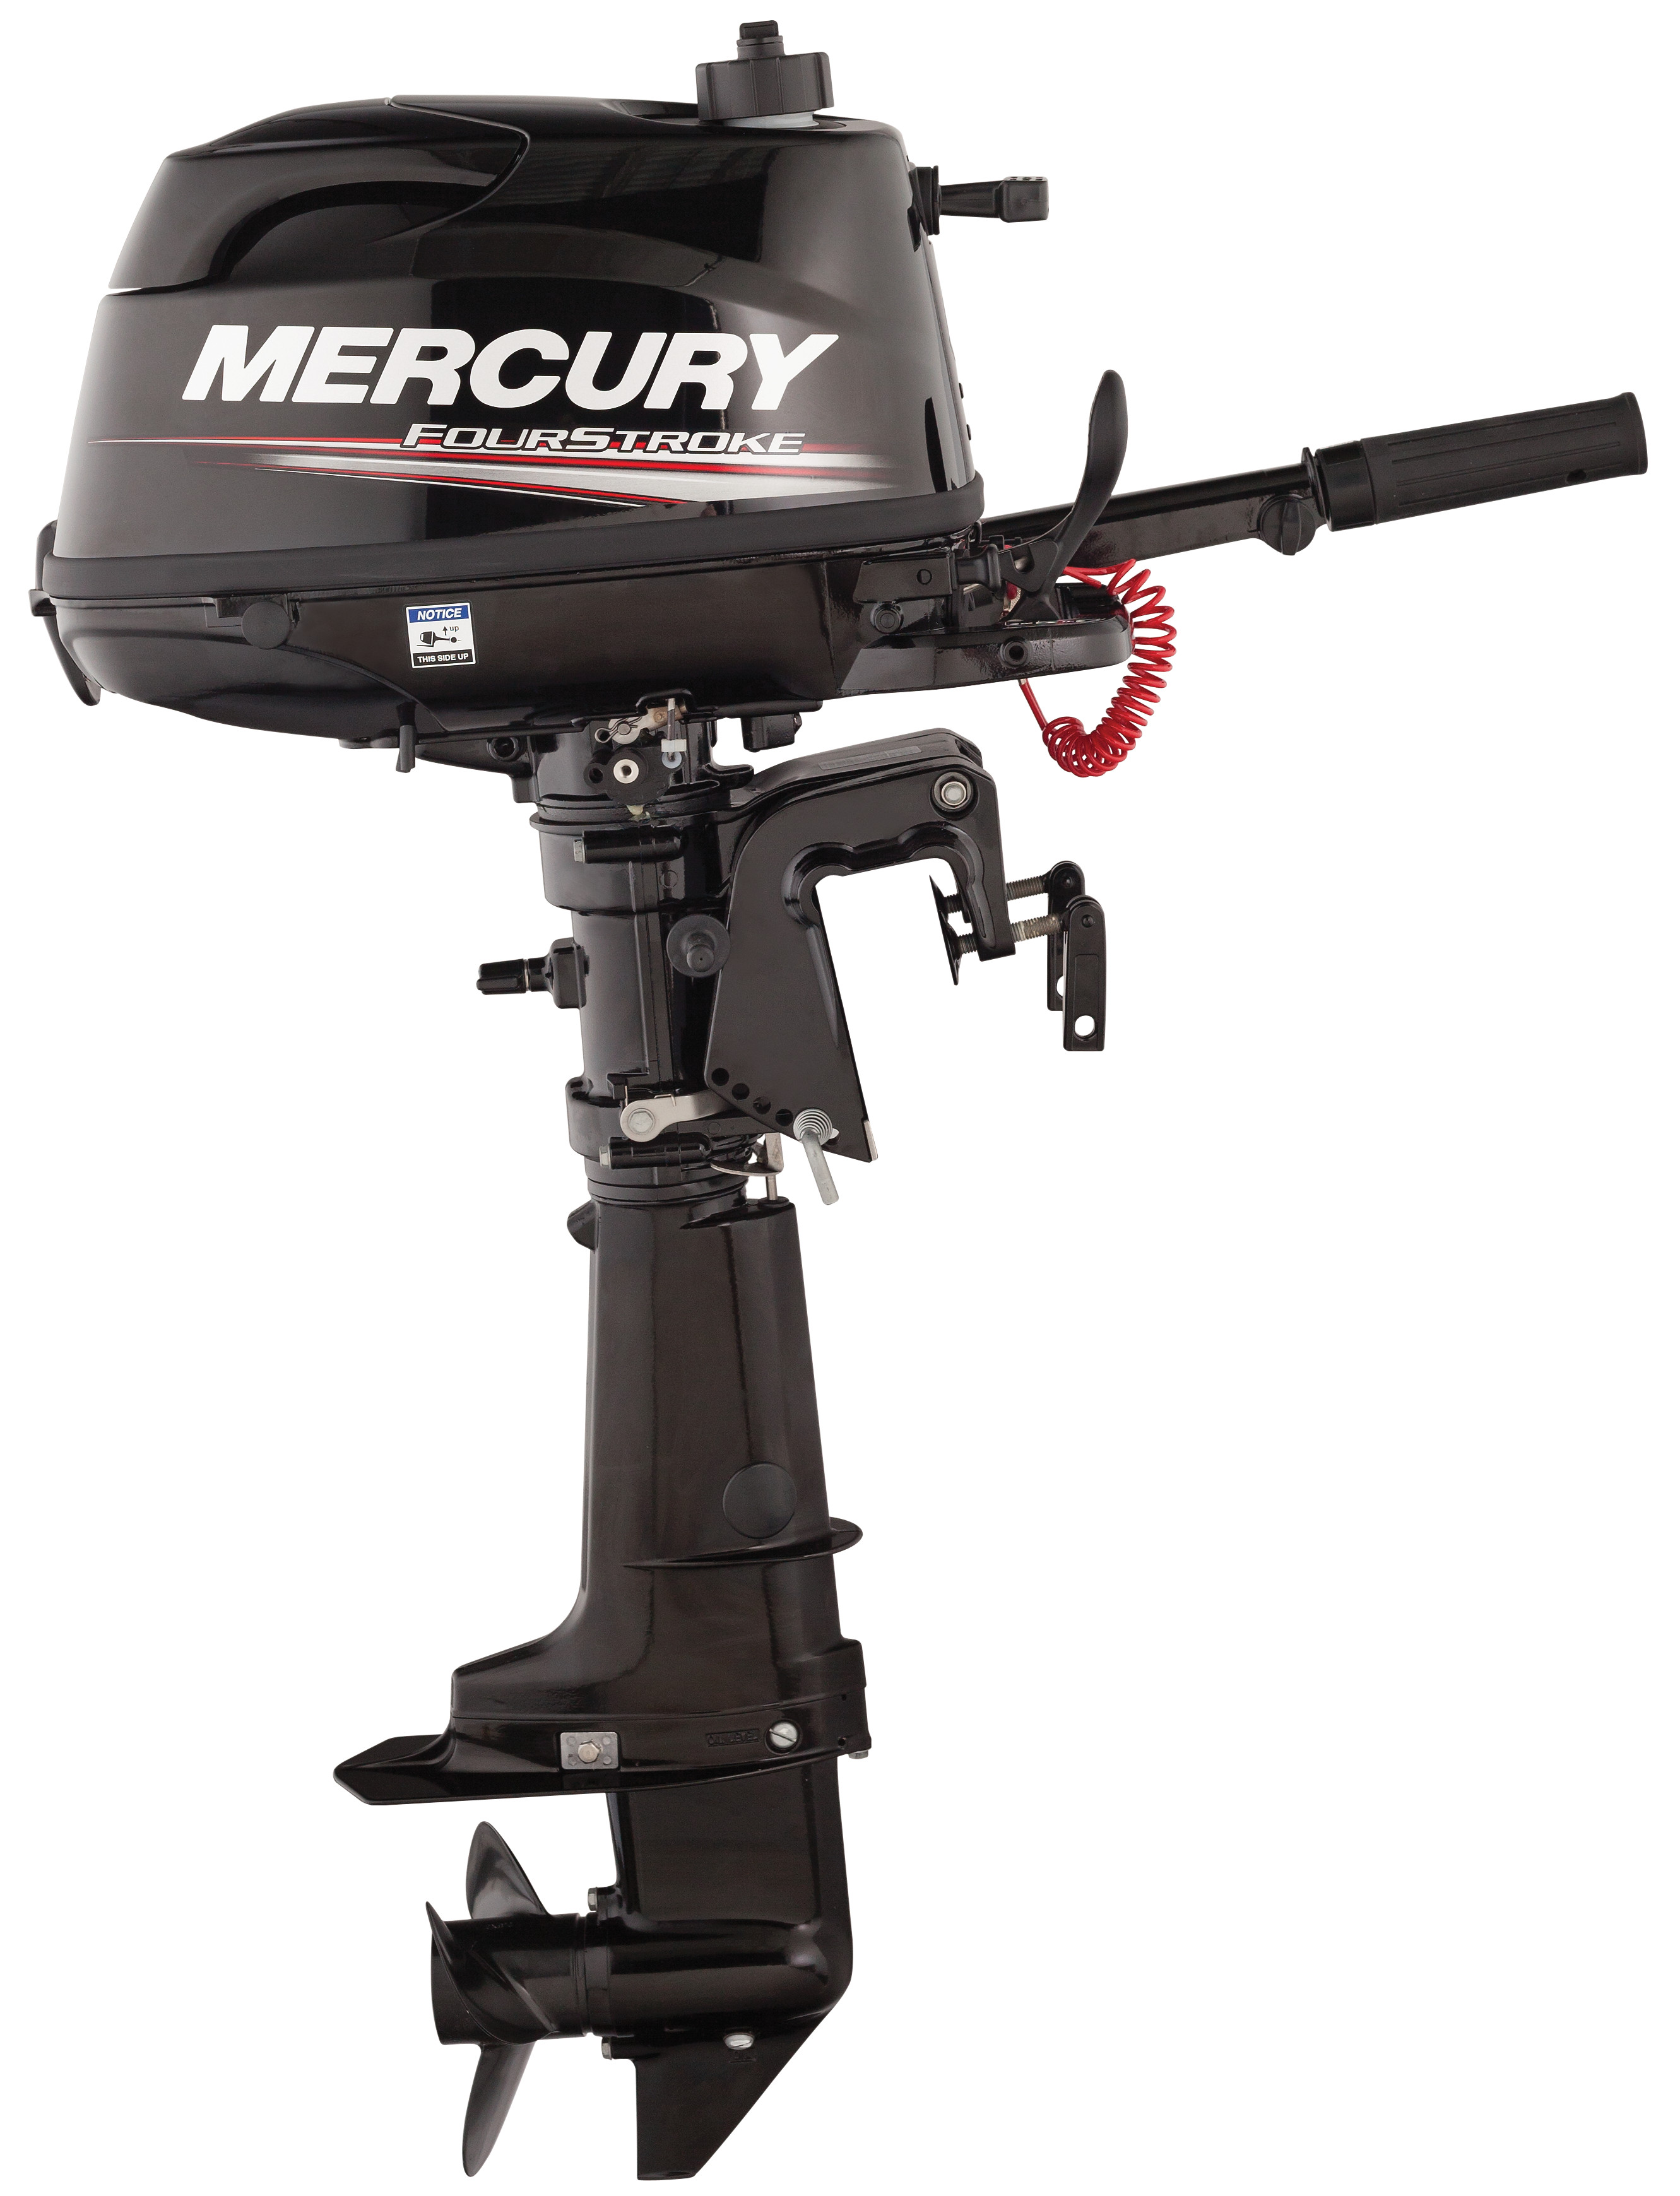 mercury destockage 5 cv 4 temps arbre long neuf de 2017  1 180  u20ac ttc